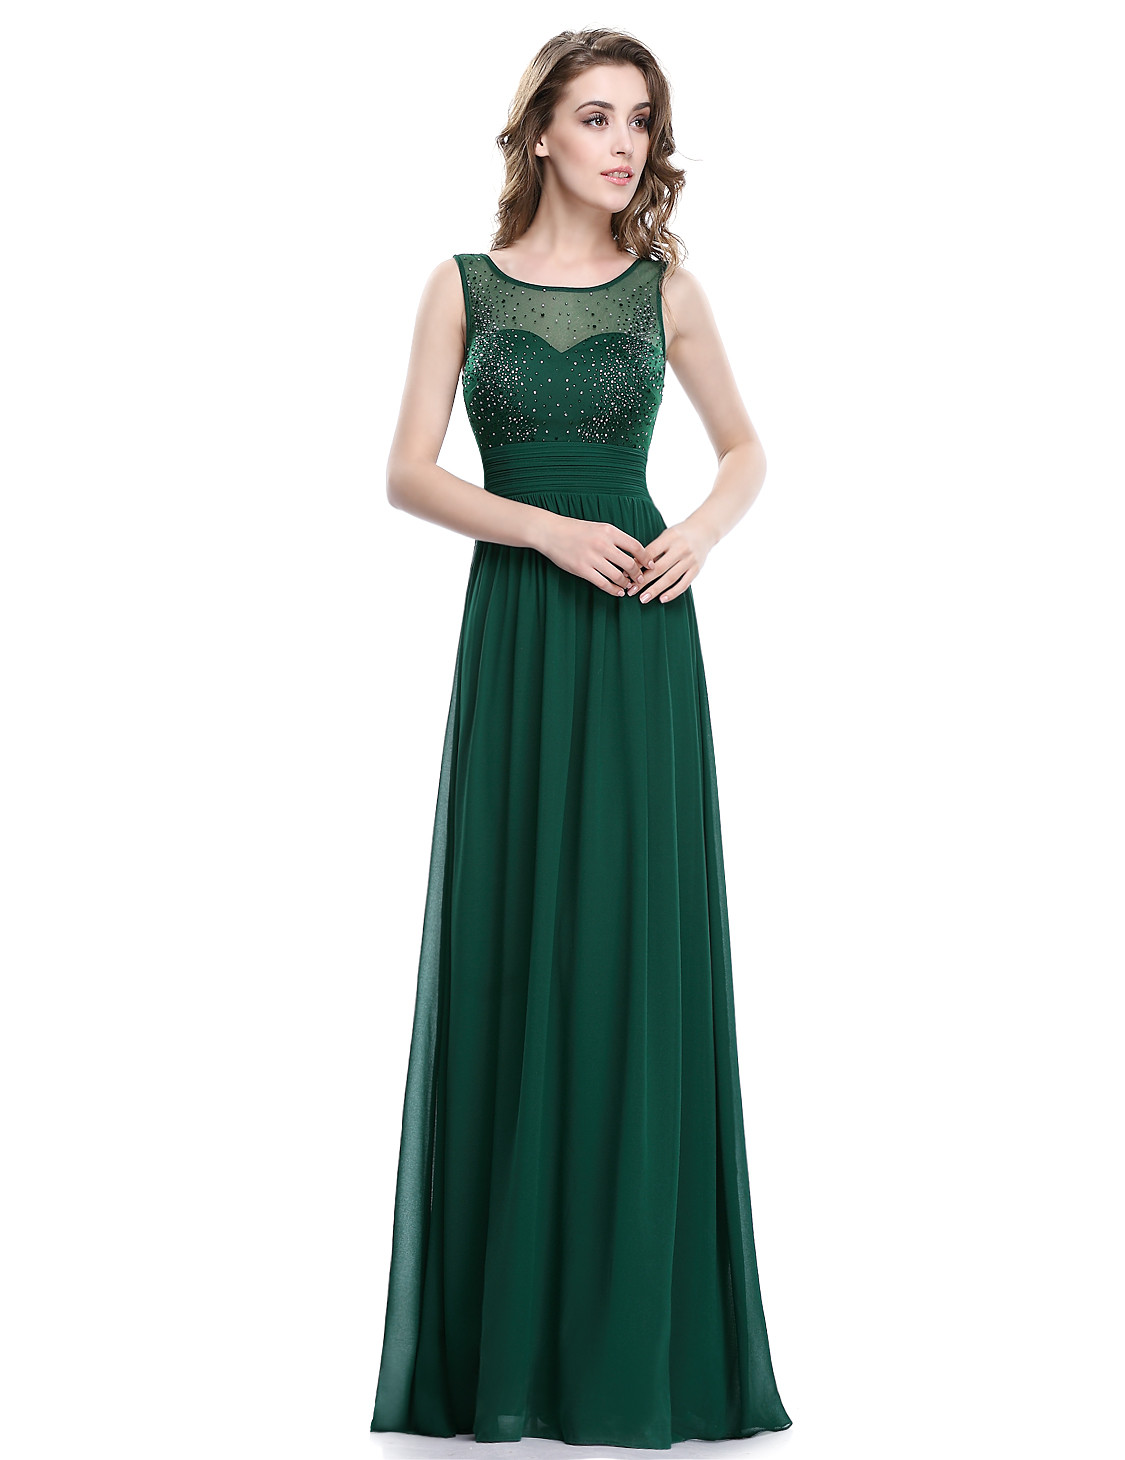 Elegant Forest Green Sparkle Bust Bridesmaid Dress